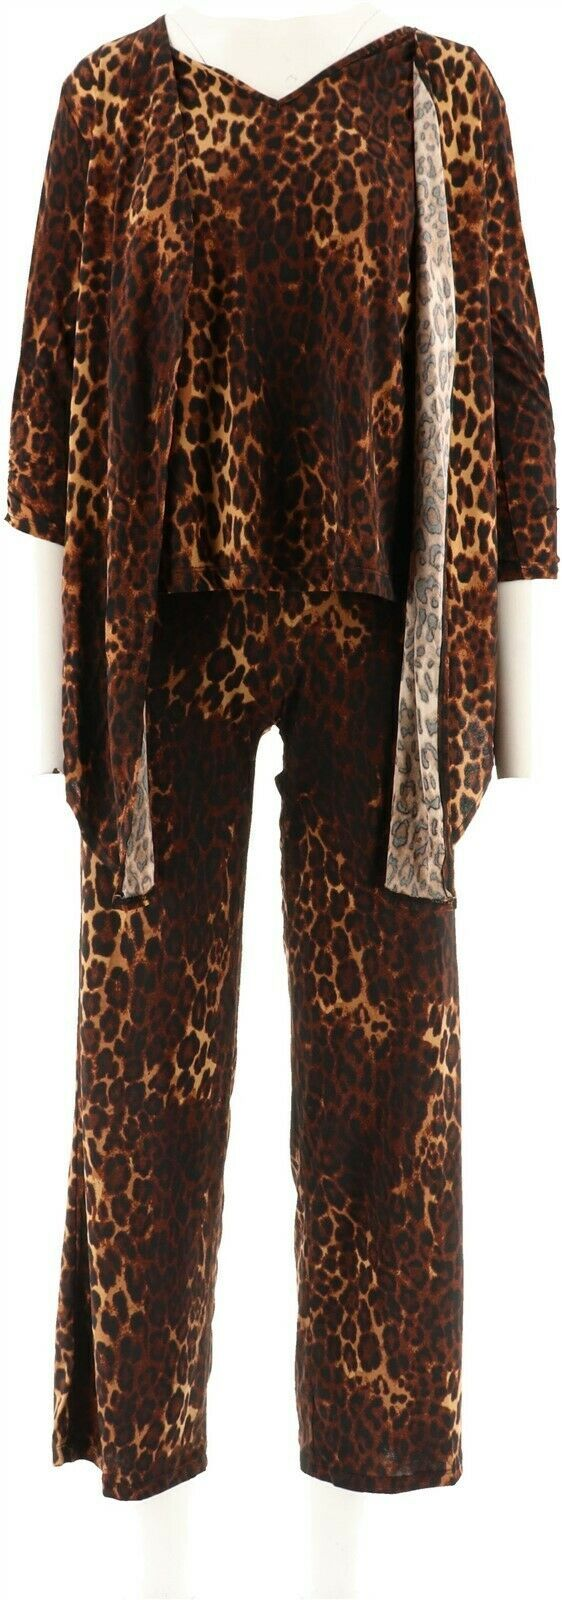 Primary image for IMAN Global Chic Luxe 4-Pc Perfect Party Ensemble LEOPARD XS Short NEW 579-000